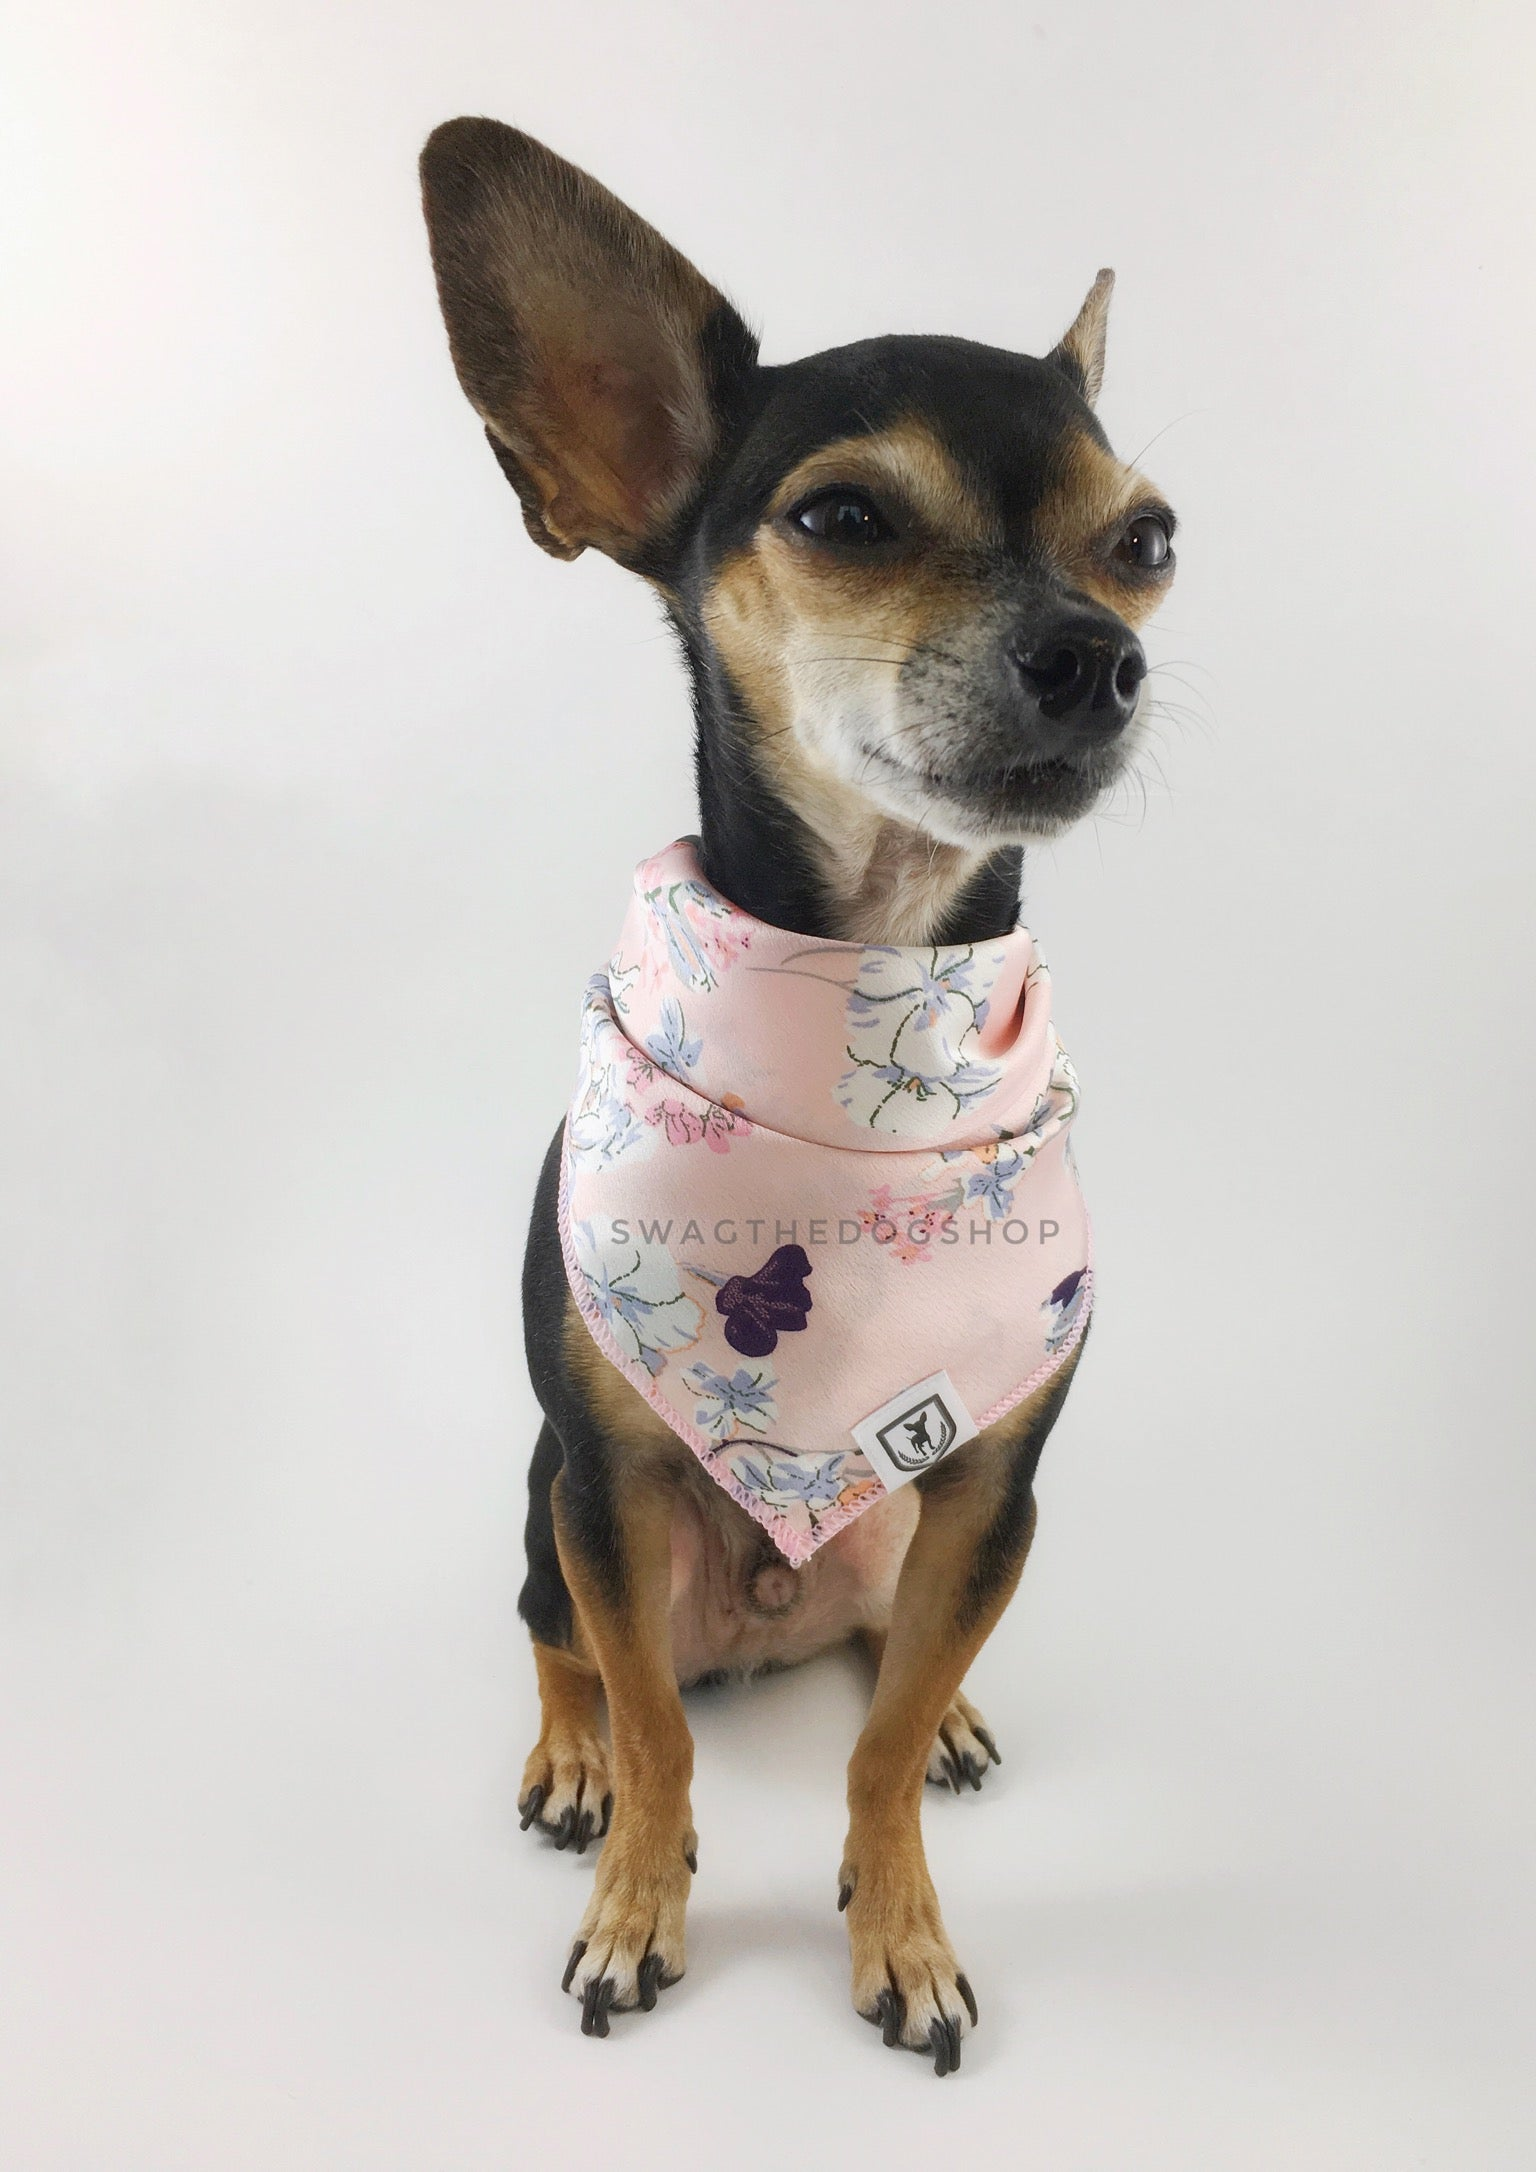 Pink Wild Flower Swagdana Scarf - Full Front View of Cute Chihuahua Wearing Swagdana Scarf as Bandana. Dog Bandana. Dog Scarf.